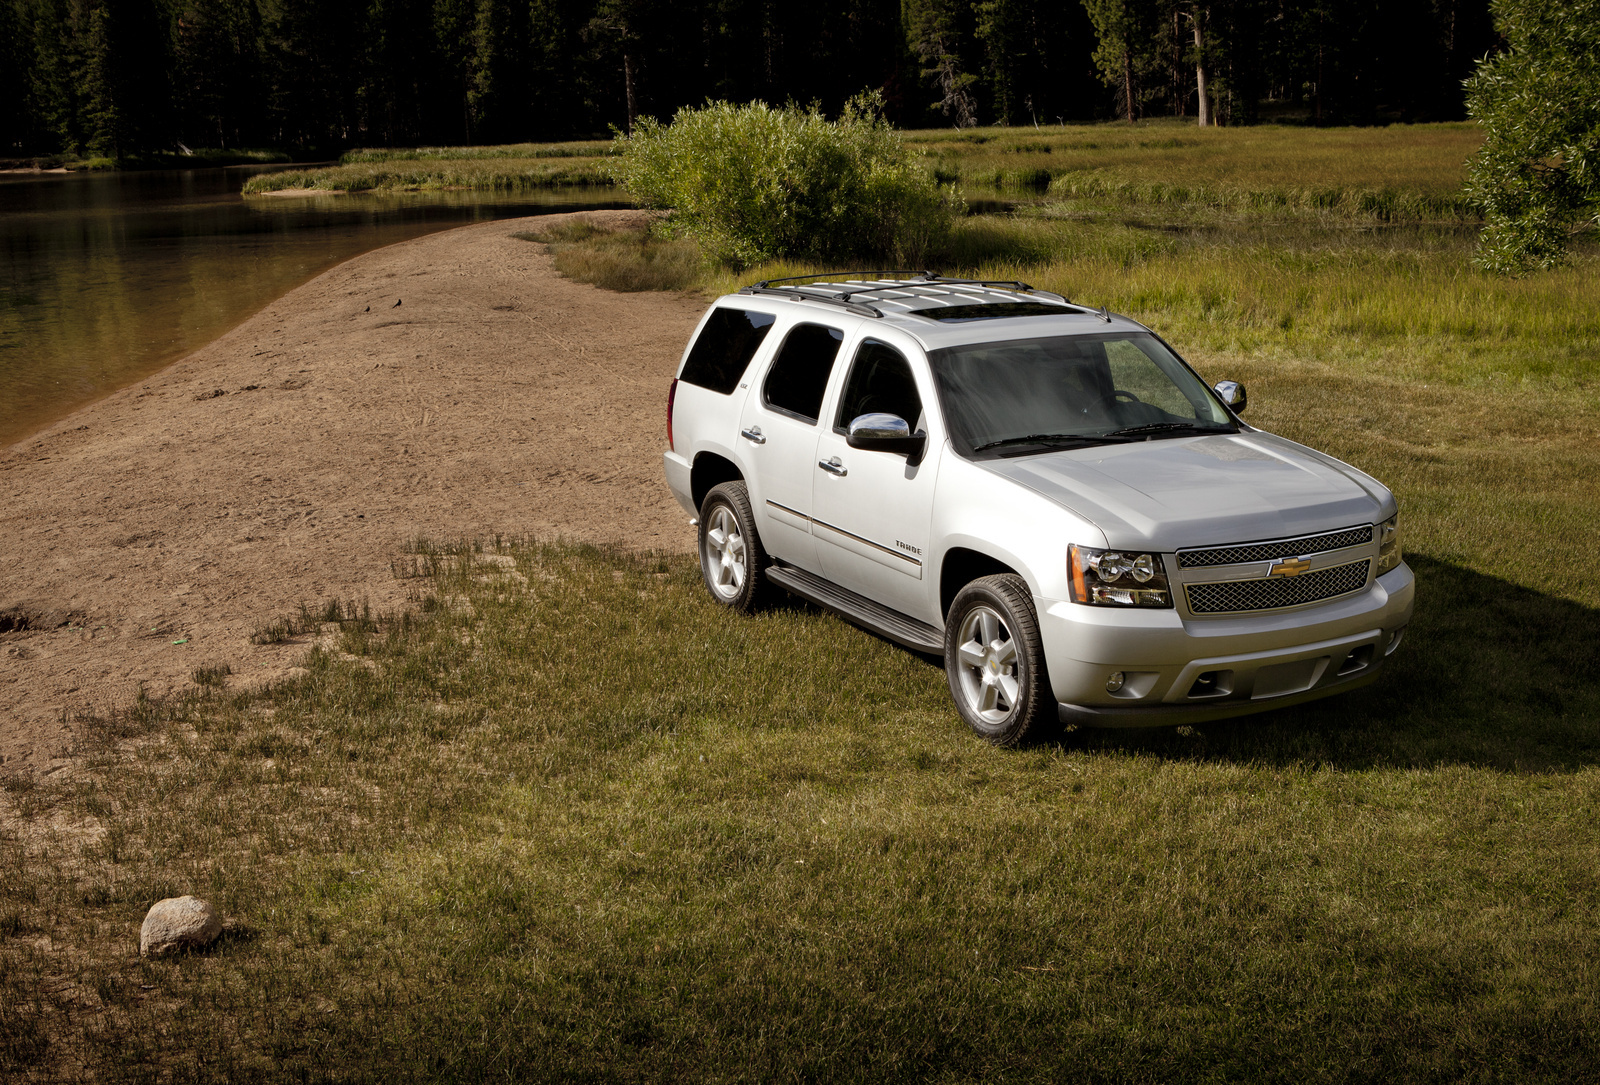 Tahoe 2004 chevy tahoe towing capacity : 2013 Chevrolet Tahoe - Overview - CarGurus